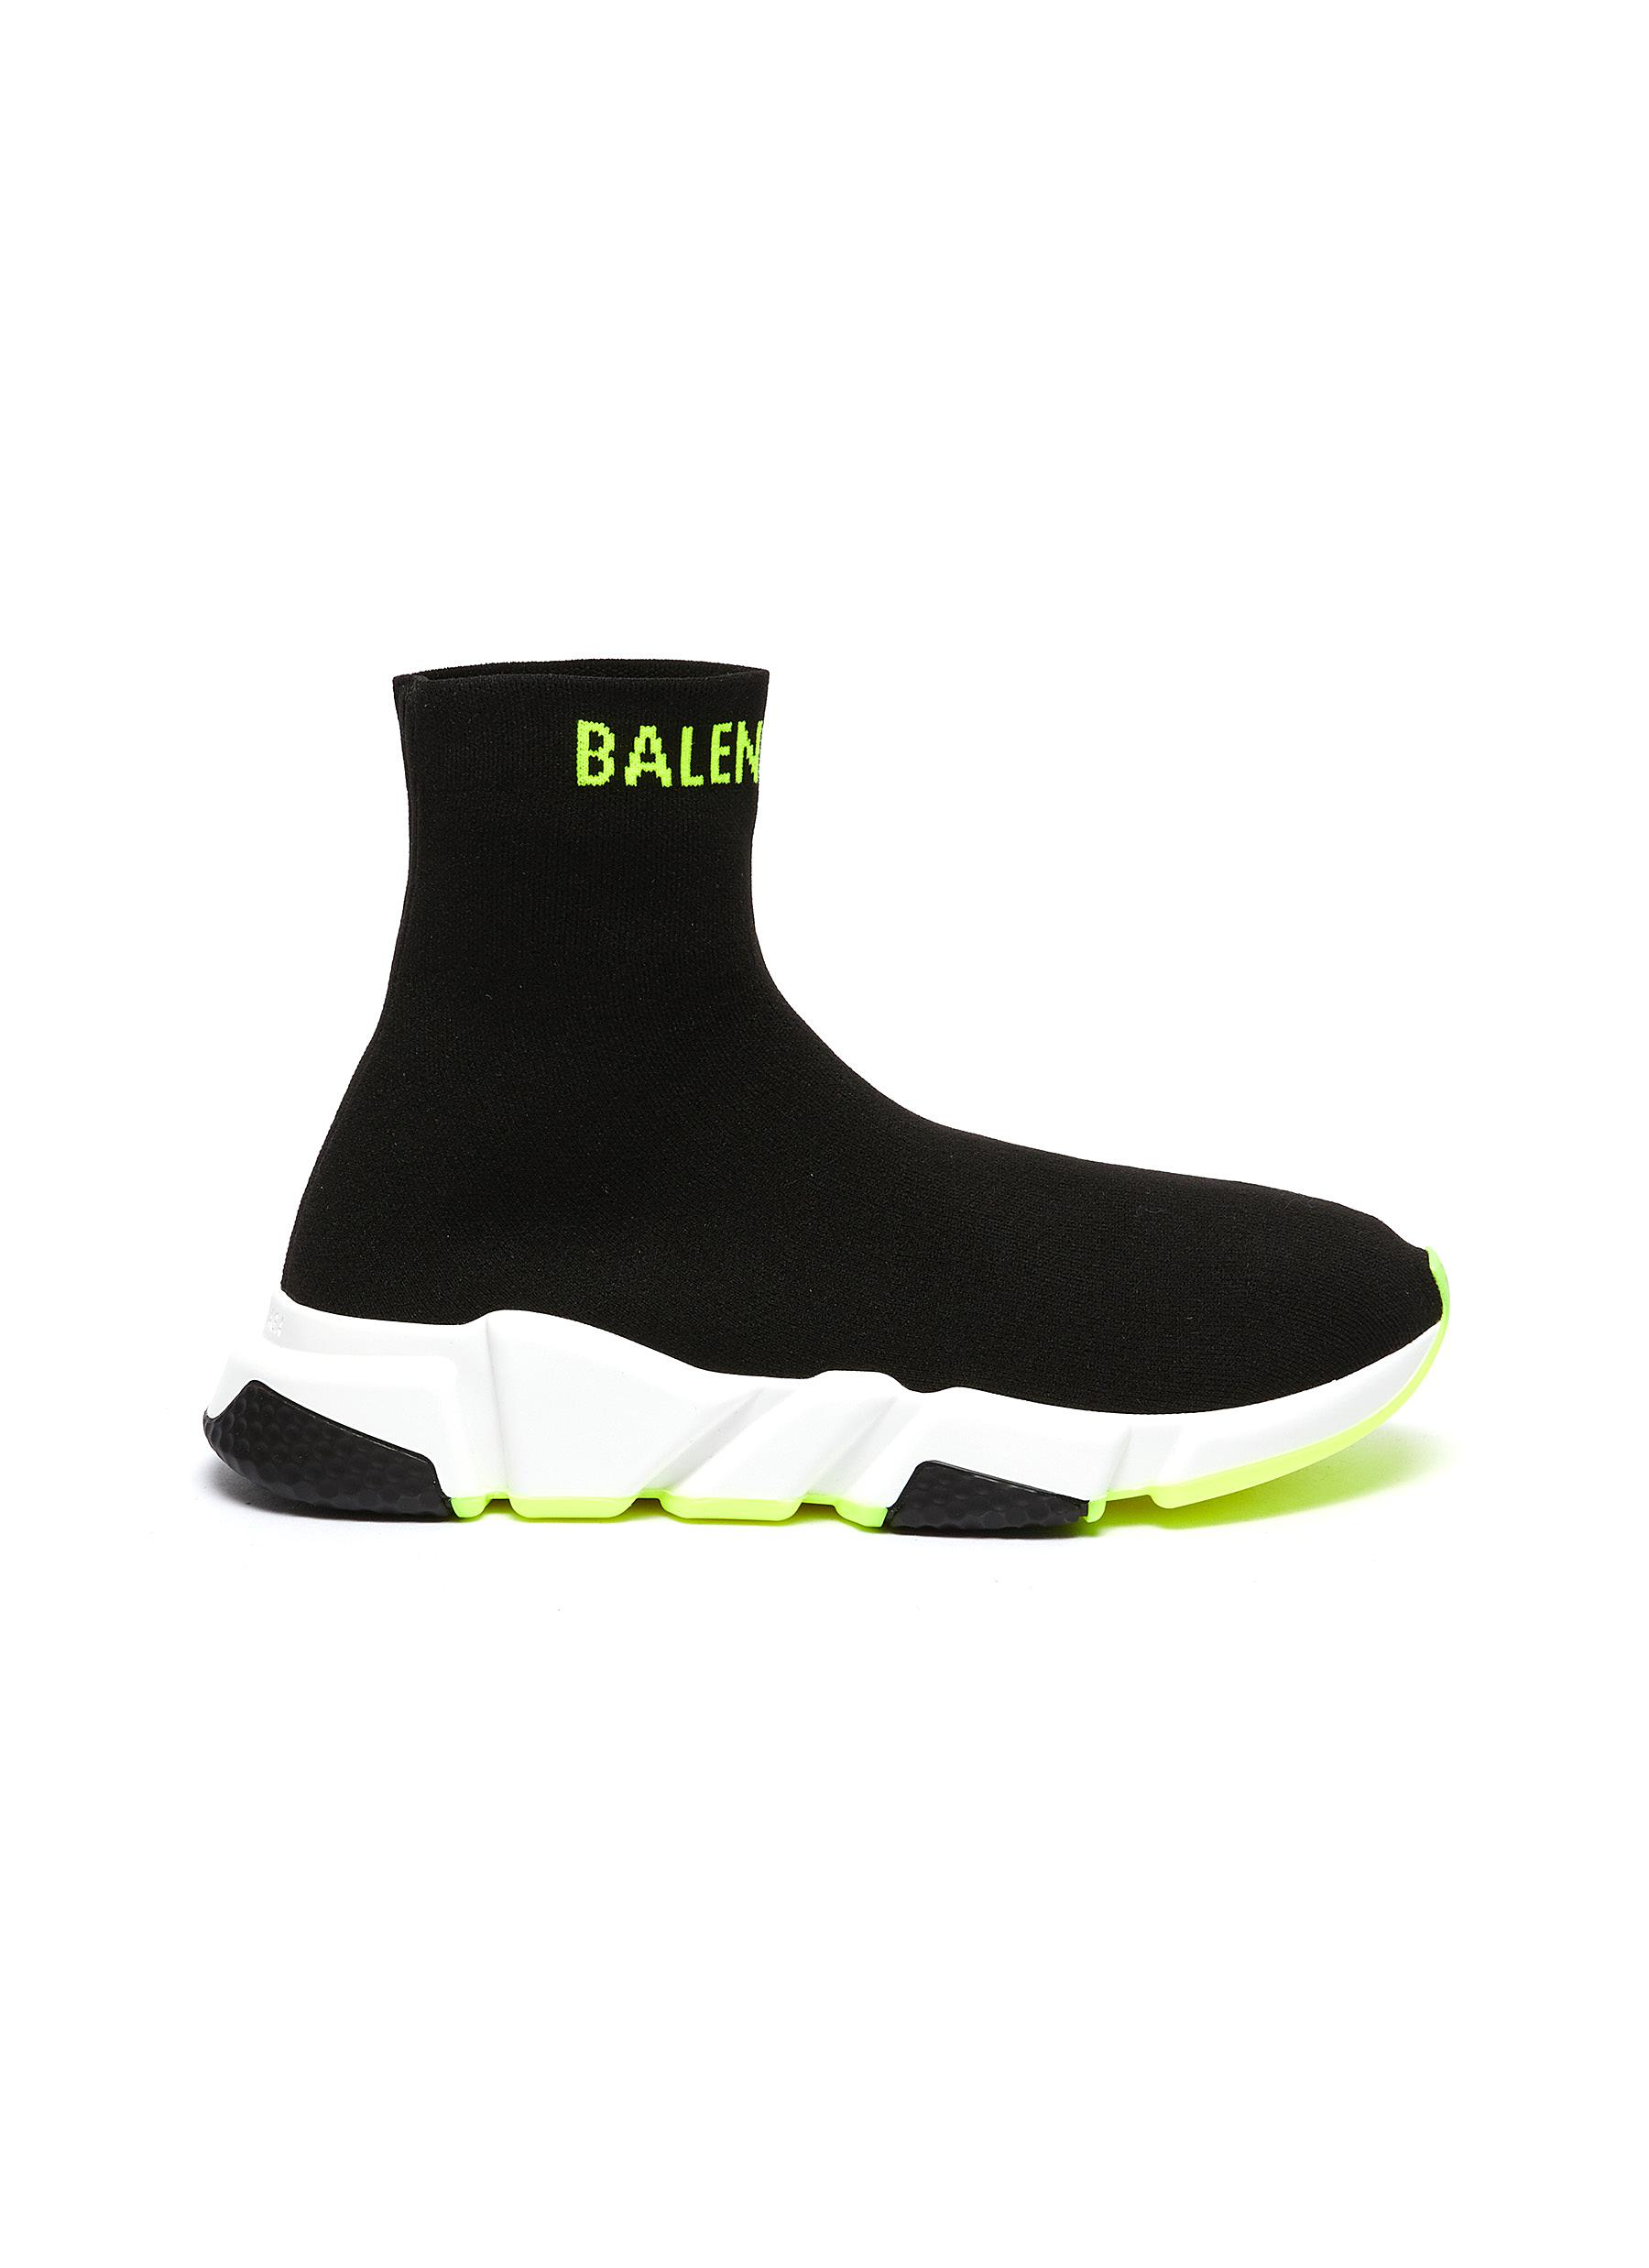 Speed logo cuff knit slip-on sneakers by Balenciaga